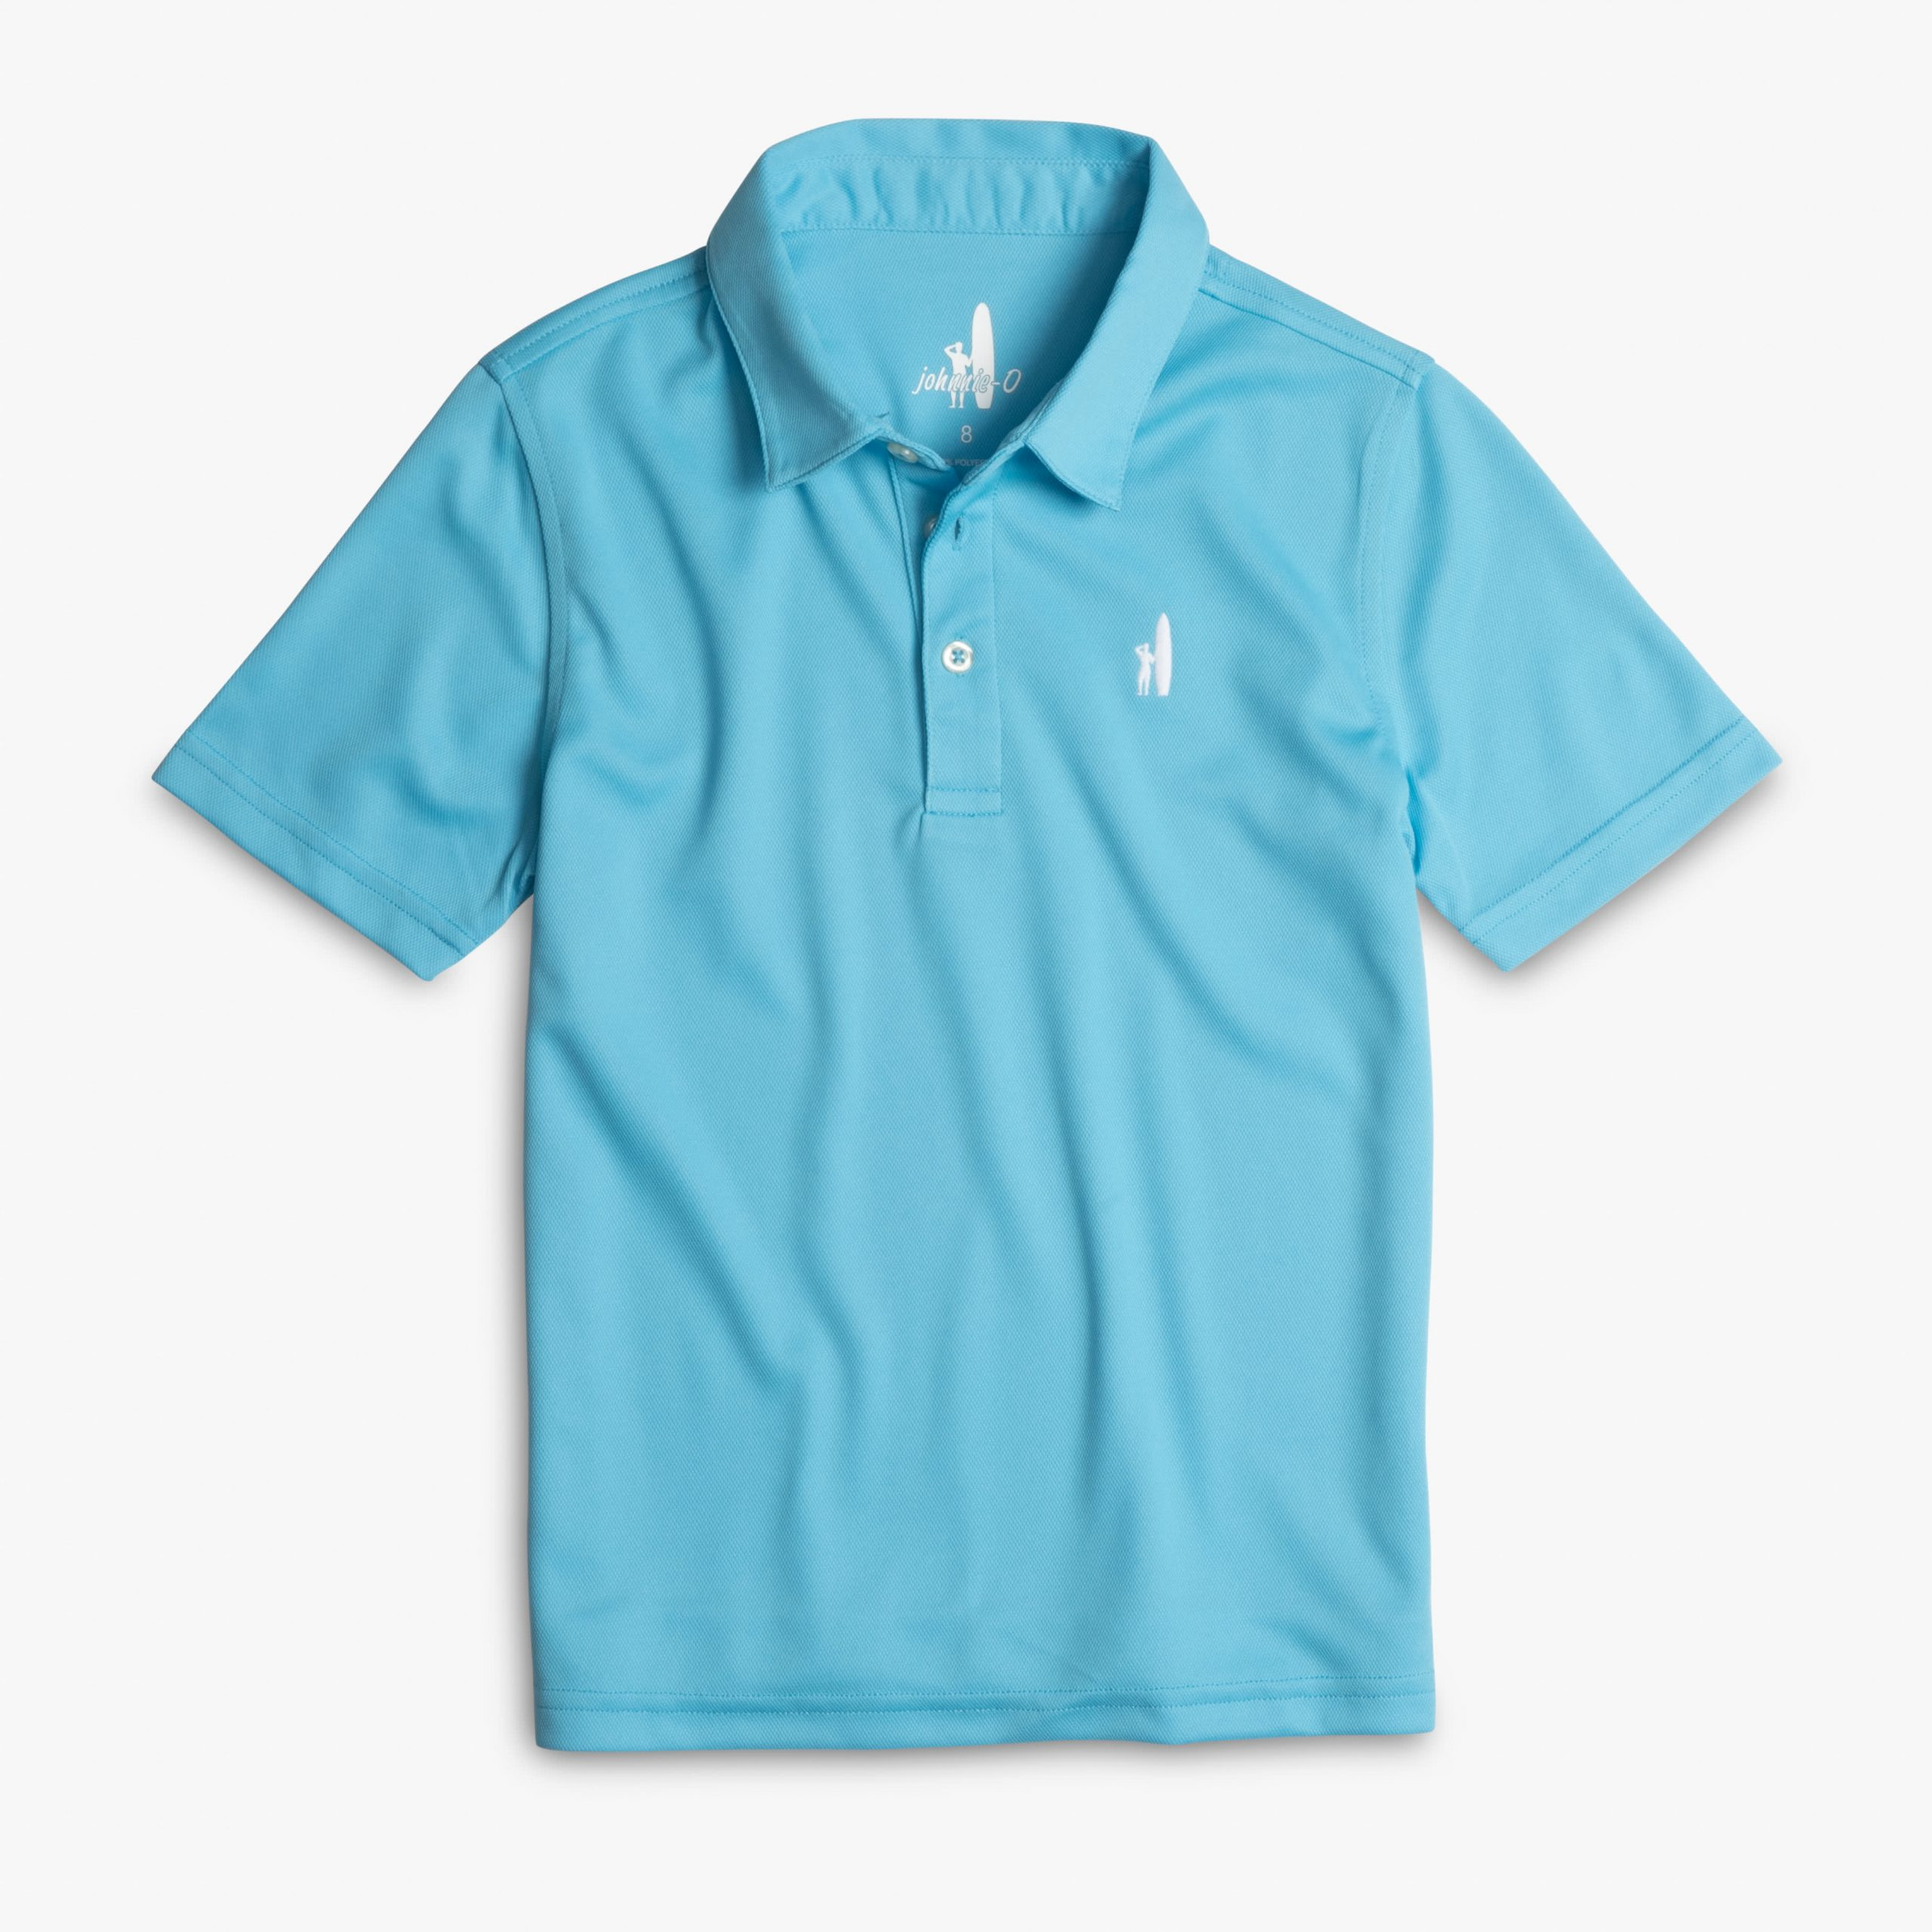 FAIRWAY PREP-FORMANCE JR POLO